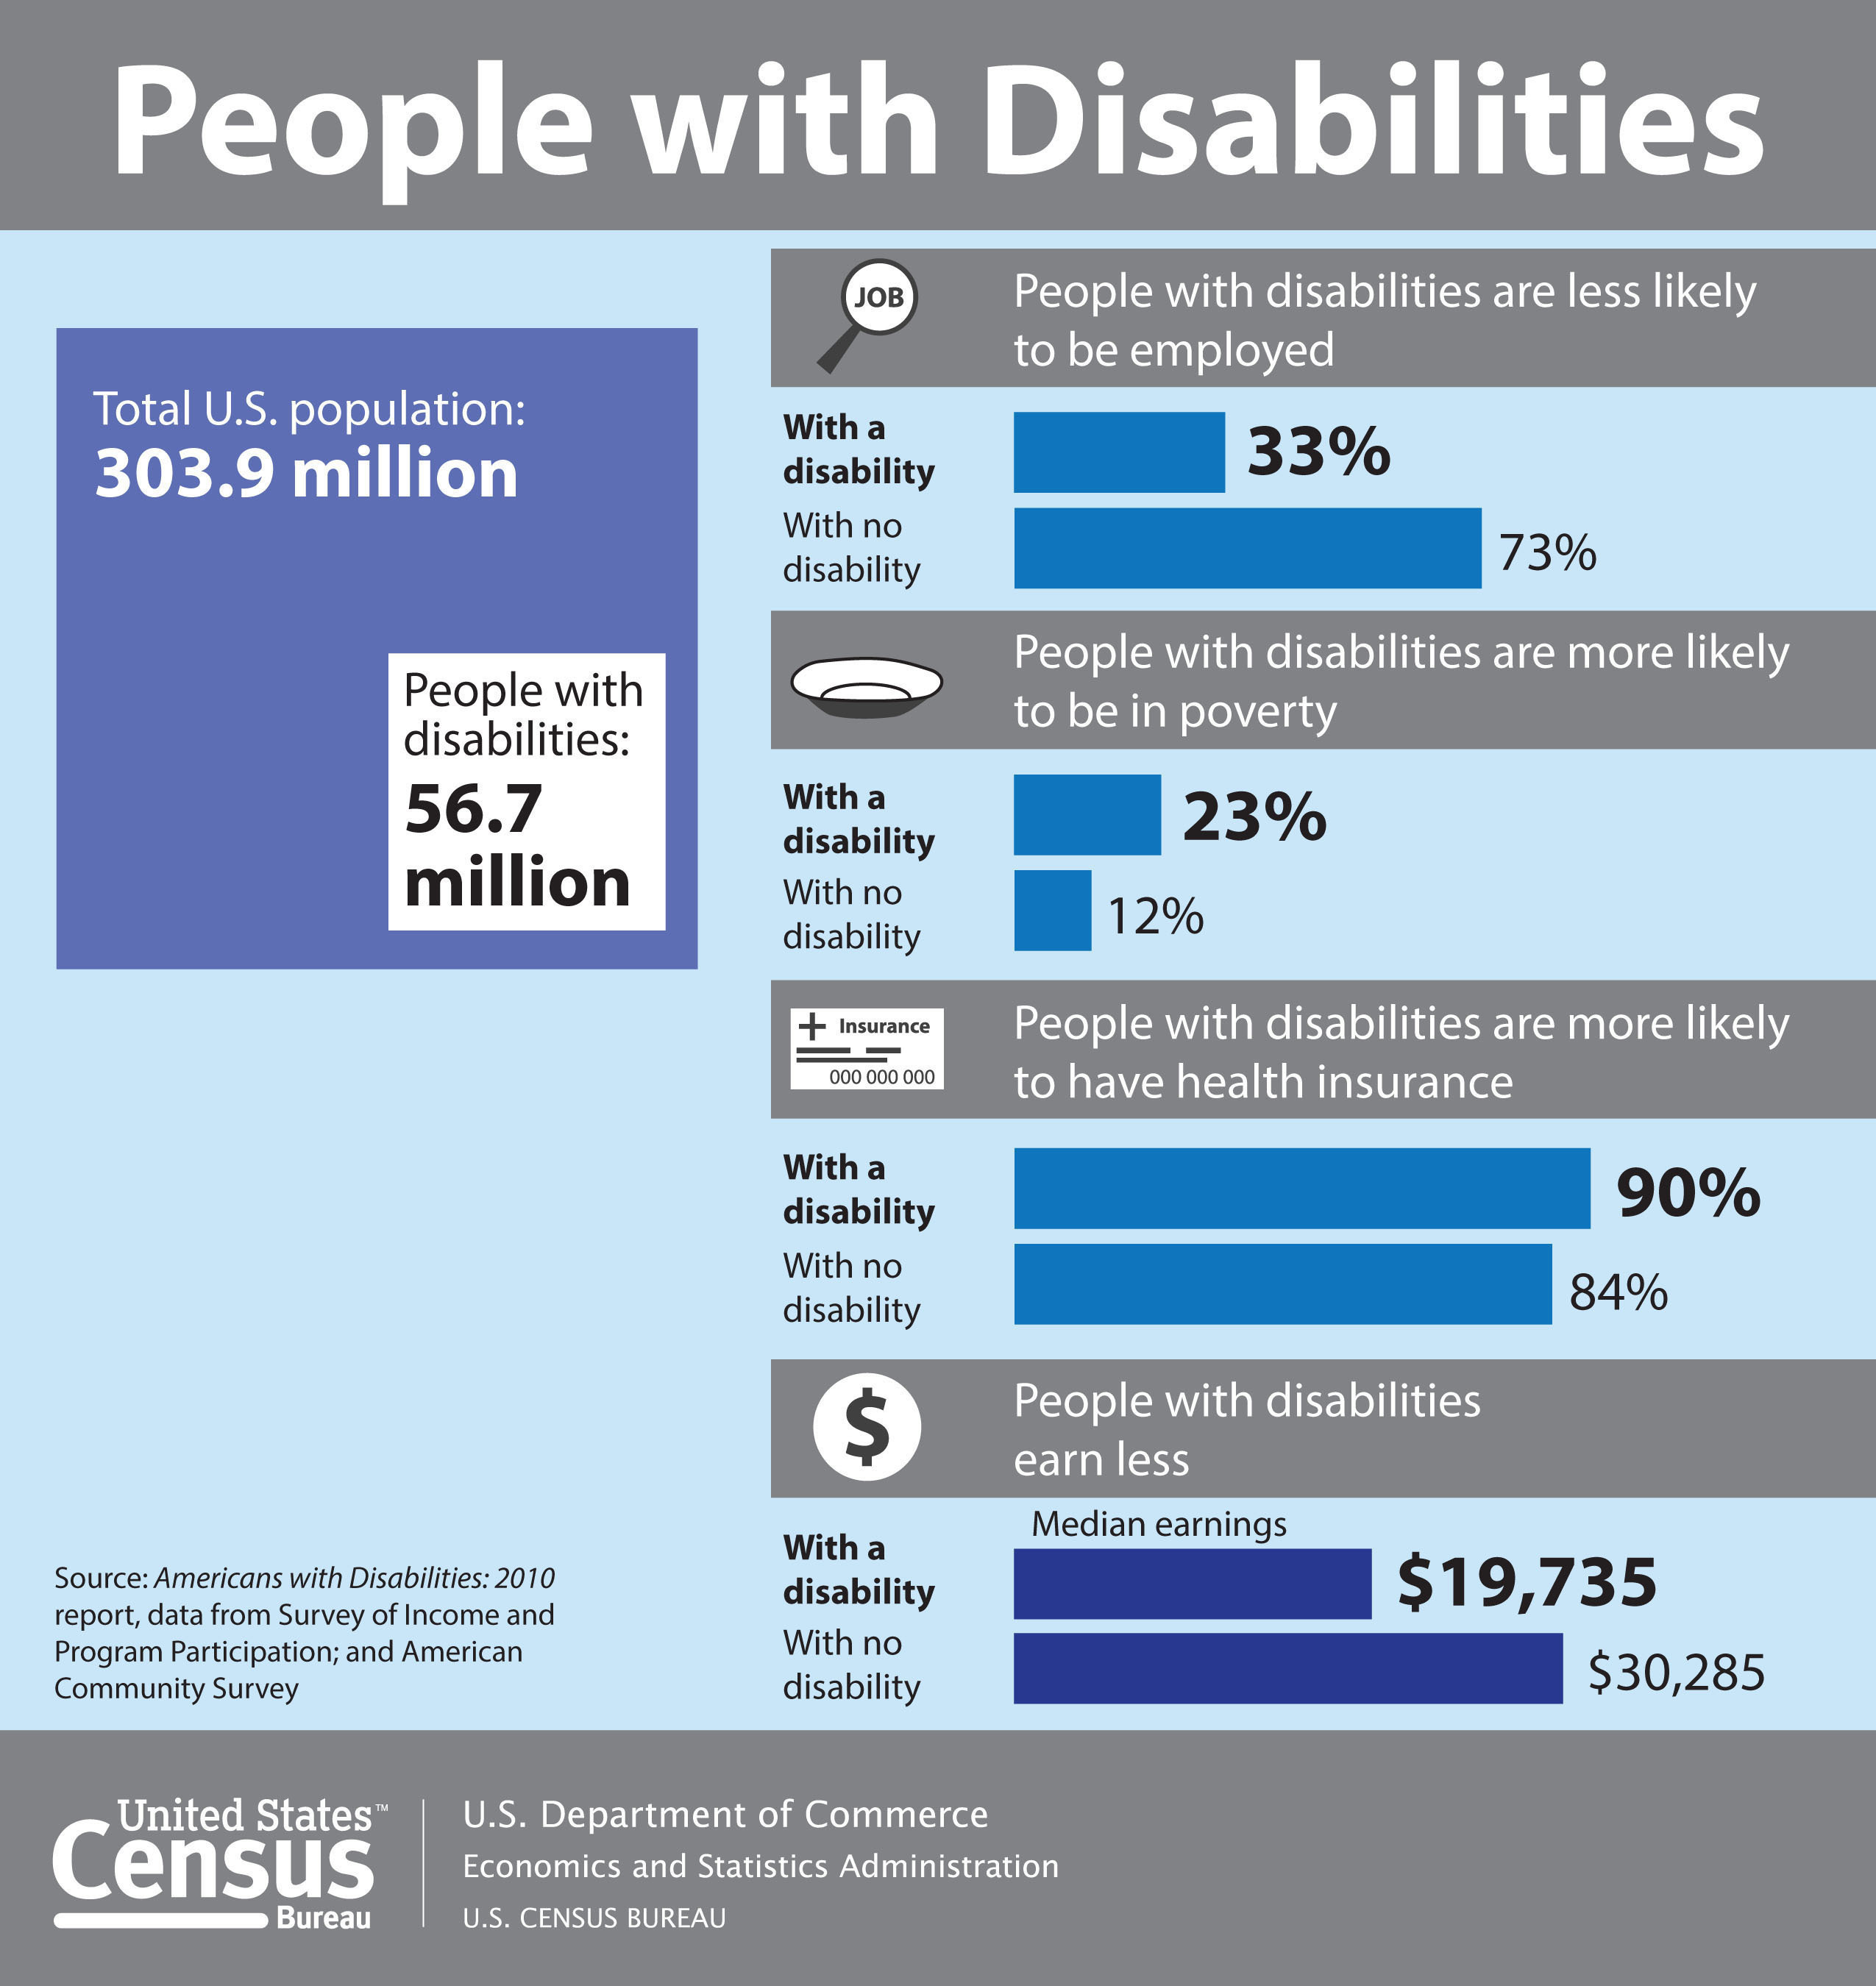 Census Bureau: How People with Disabilities Fare Compared to Everyone Else. www.census.gov.  (PRNewsFoto/U.S. Census Bureau)